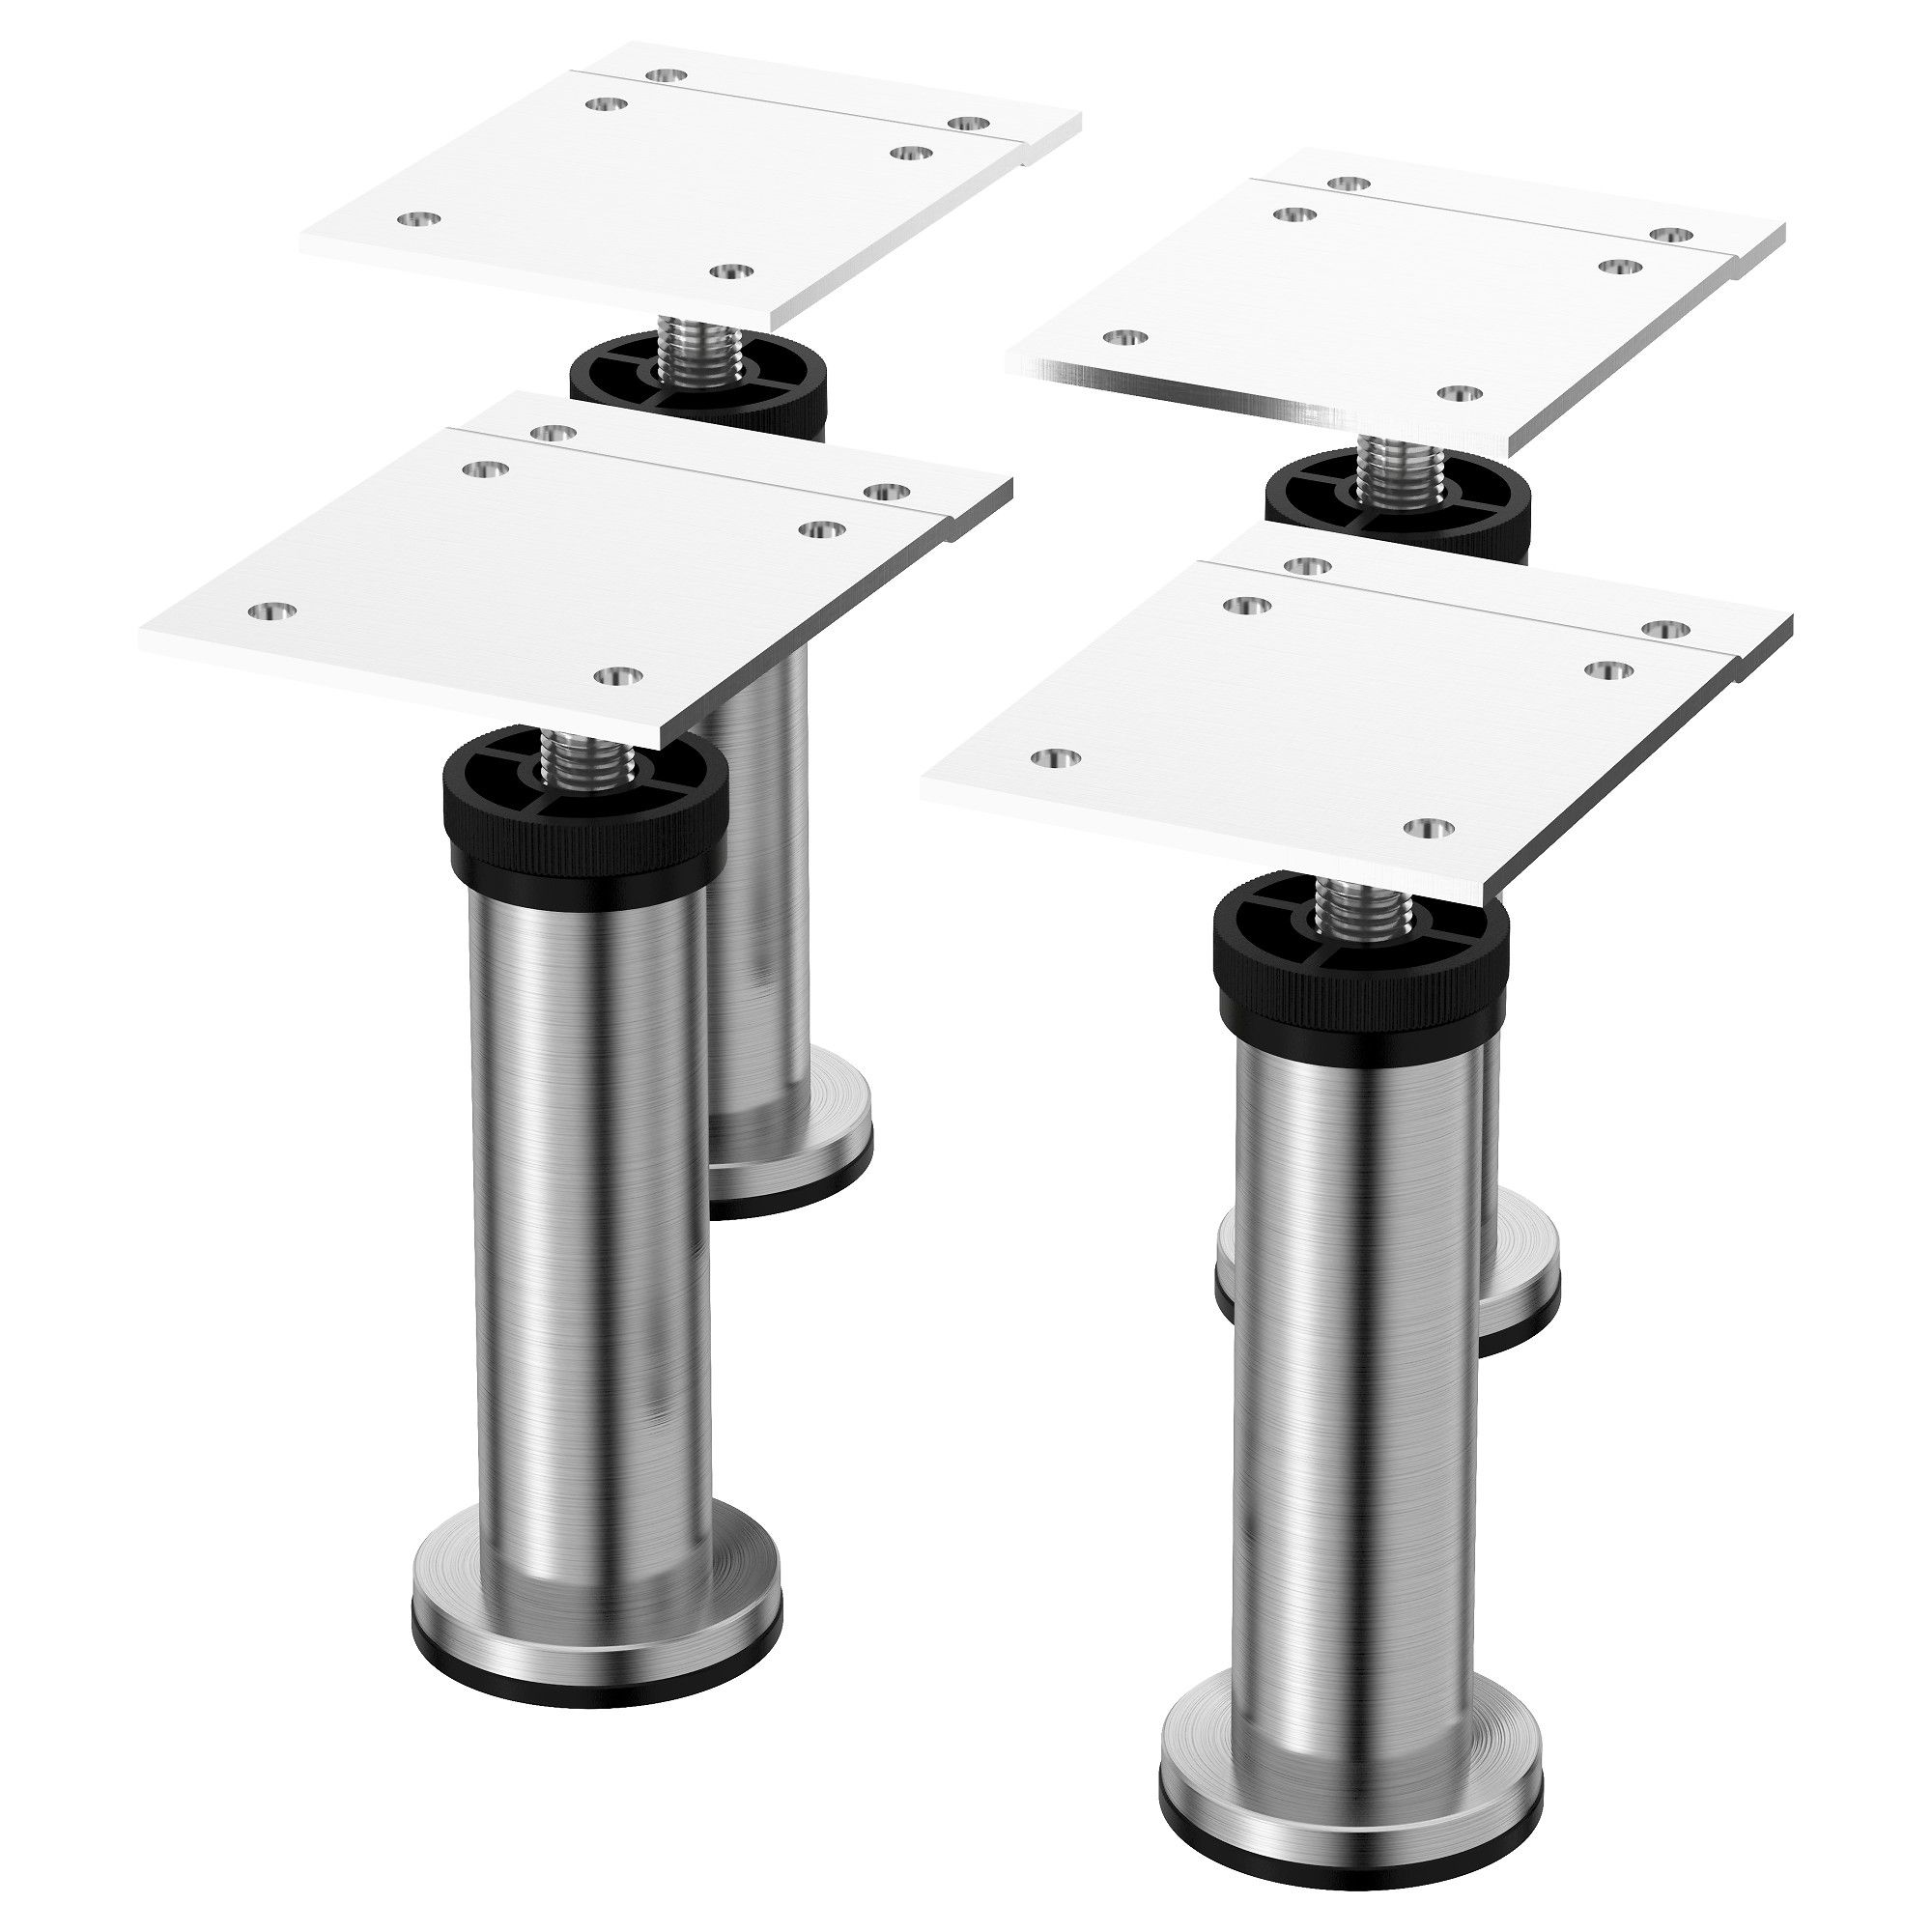 Capita Leg Stainless Steel 4 1 2 Ikea Adjustable Furniture Legs Ikea Furniture Legs